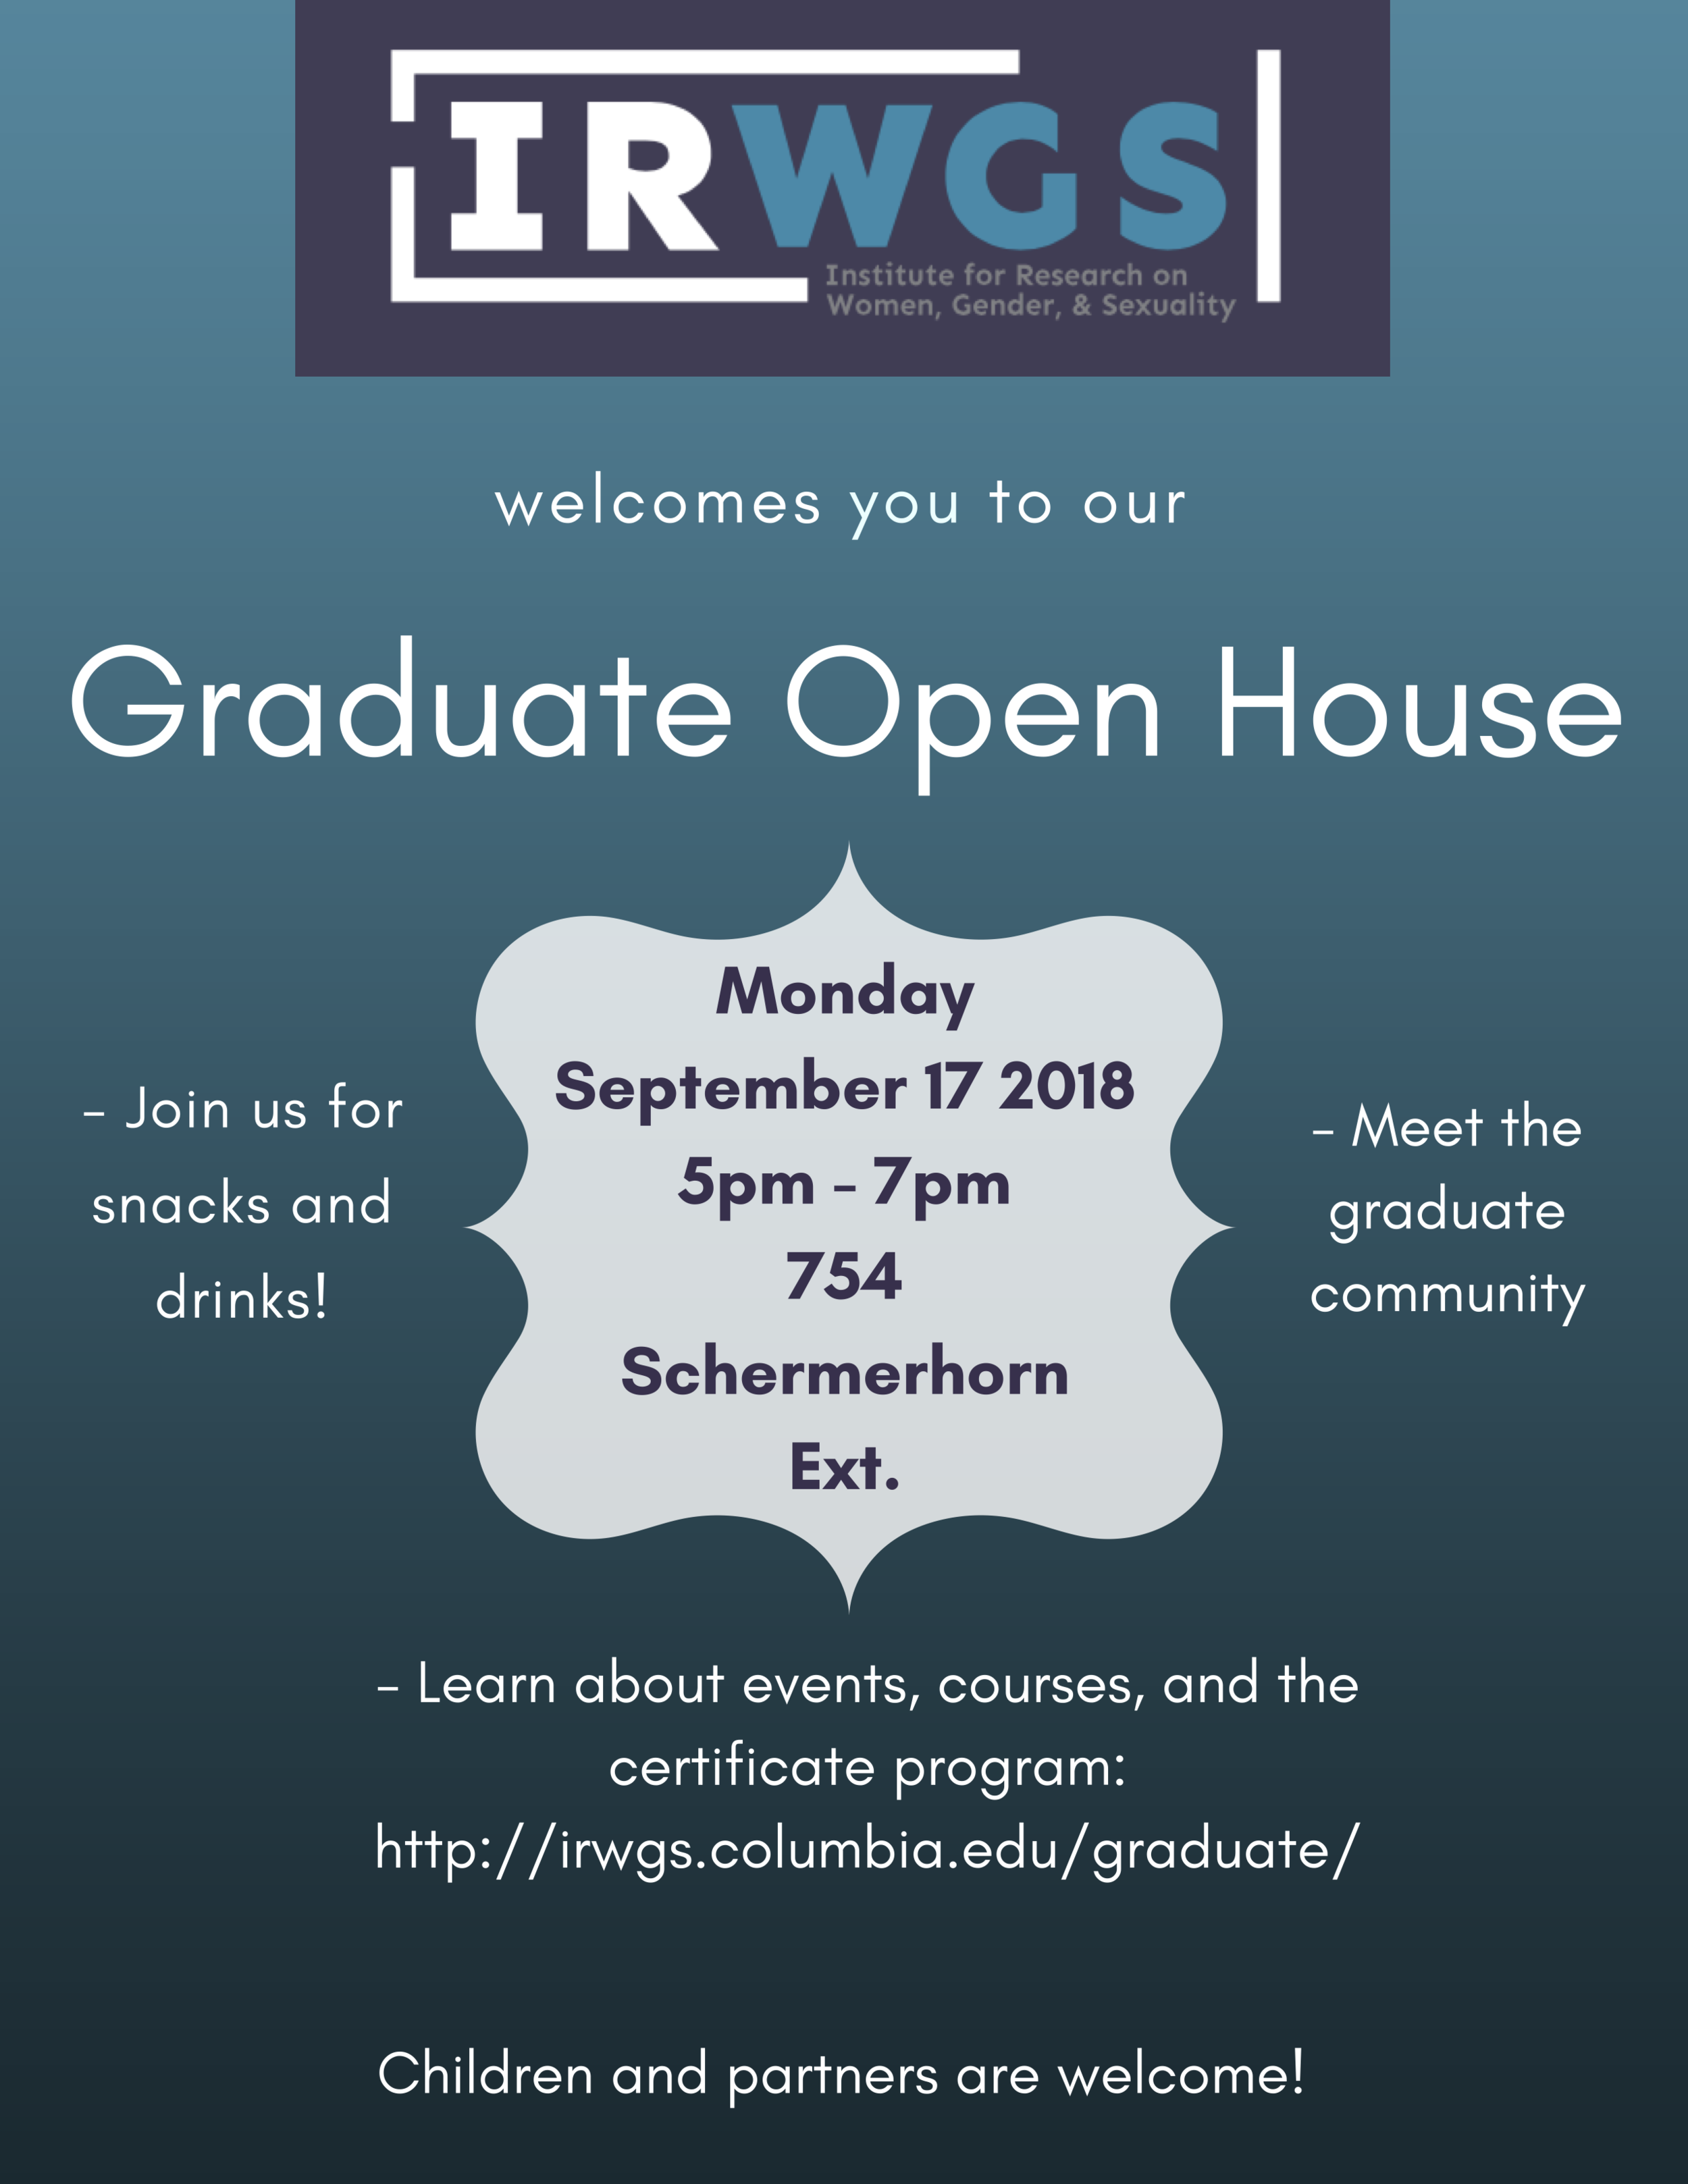 IRWGS-Graduate-Open-House-Flyer-2.png